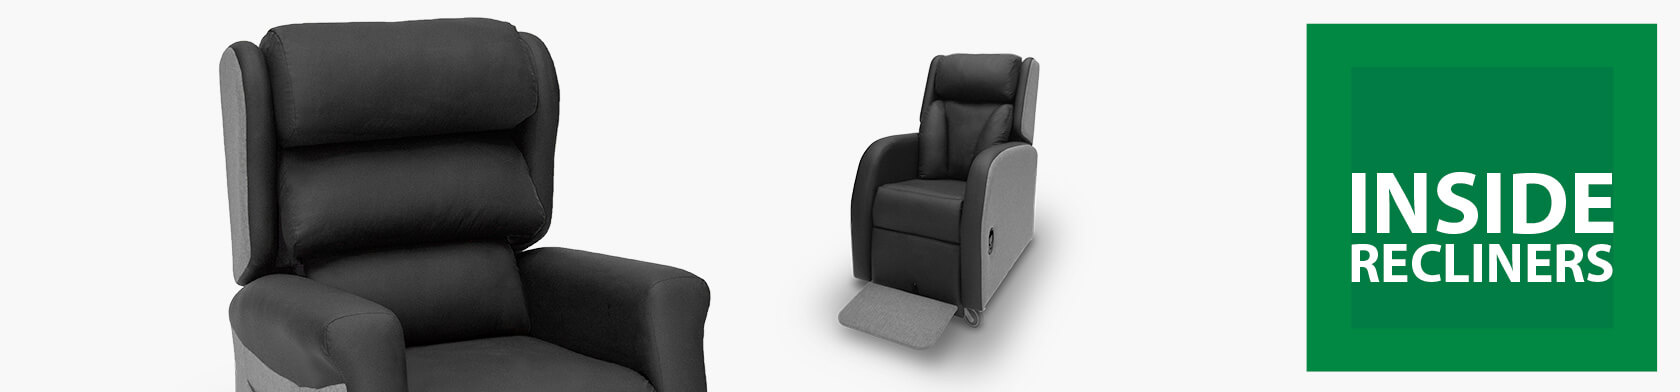 Recliners Launches Healthcare Express Range: Two New Models Available